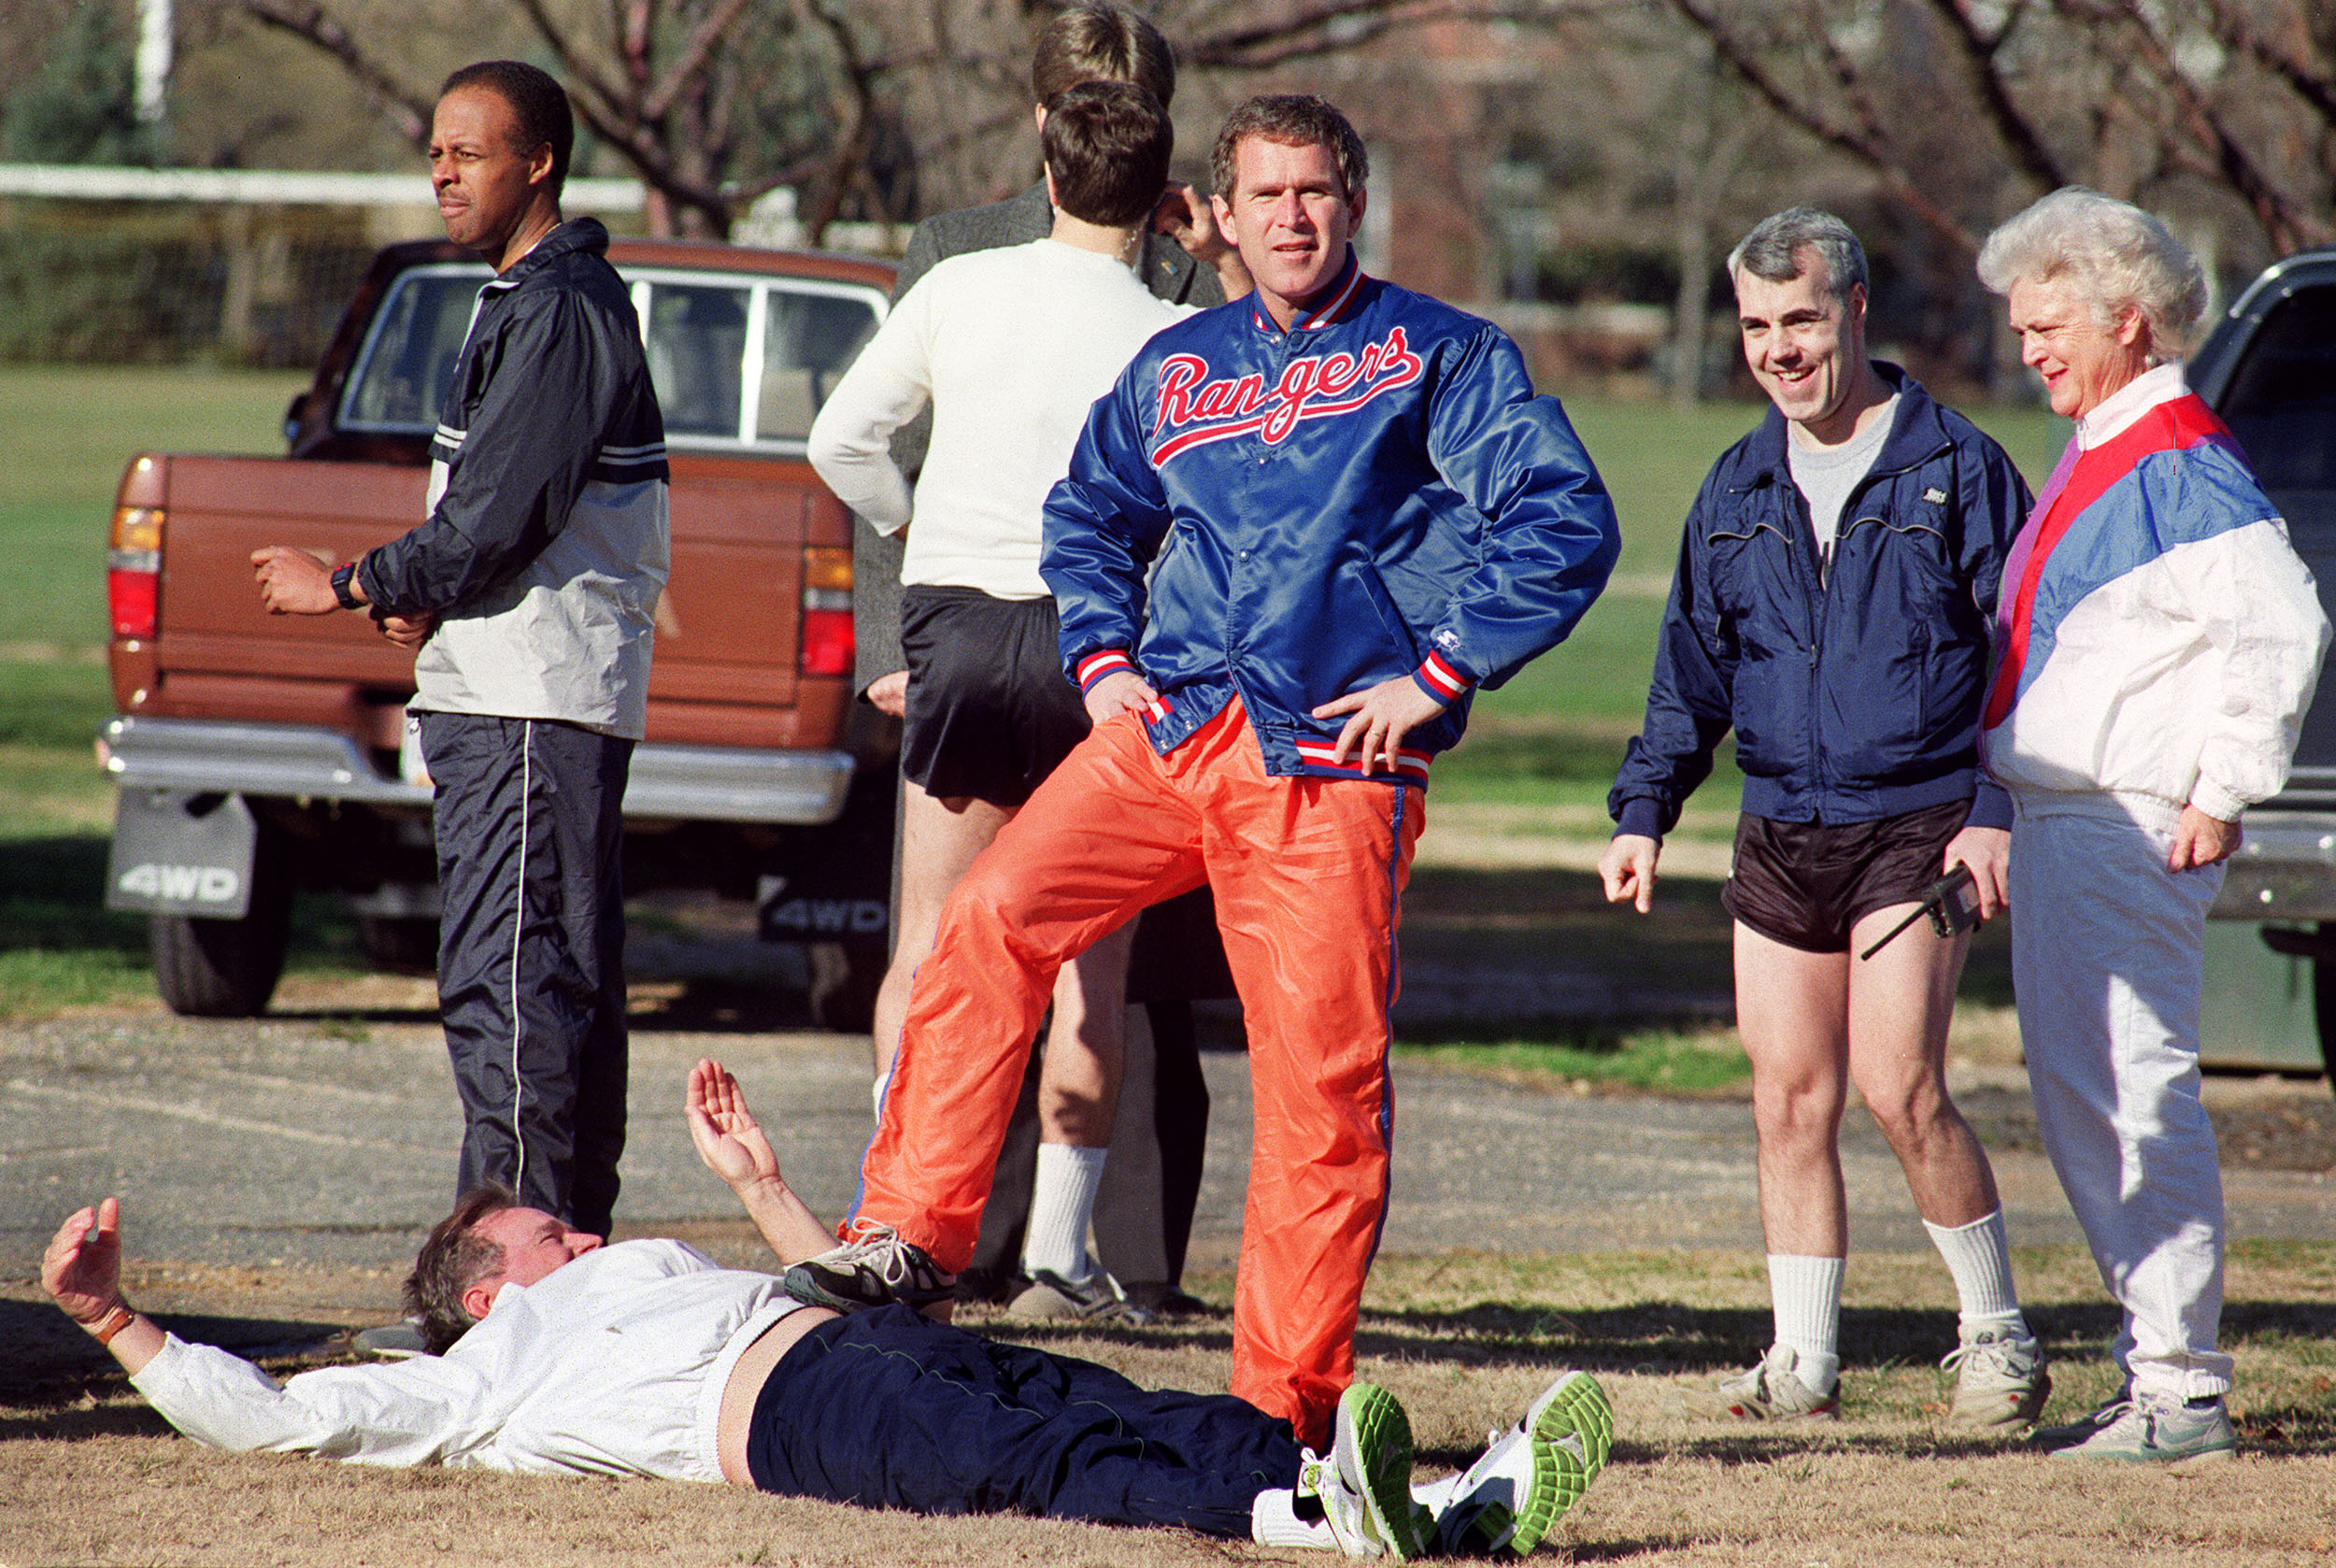 WASHINGTON, DC - JANUARY27: George W. Bush, son of the US President George Bush, playfully steps upon his father 27 January 1990 while he warms up for a run at Fort McNaire Army base while his mother Barbara (R) and US Secret Service agents look on. AFP PHOTO KEVIN LARKIN (Photo credit should read KEVIN LARKIN/AFP/Getty Images)